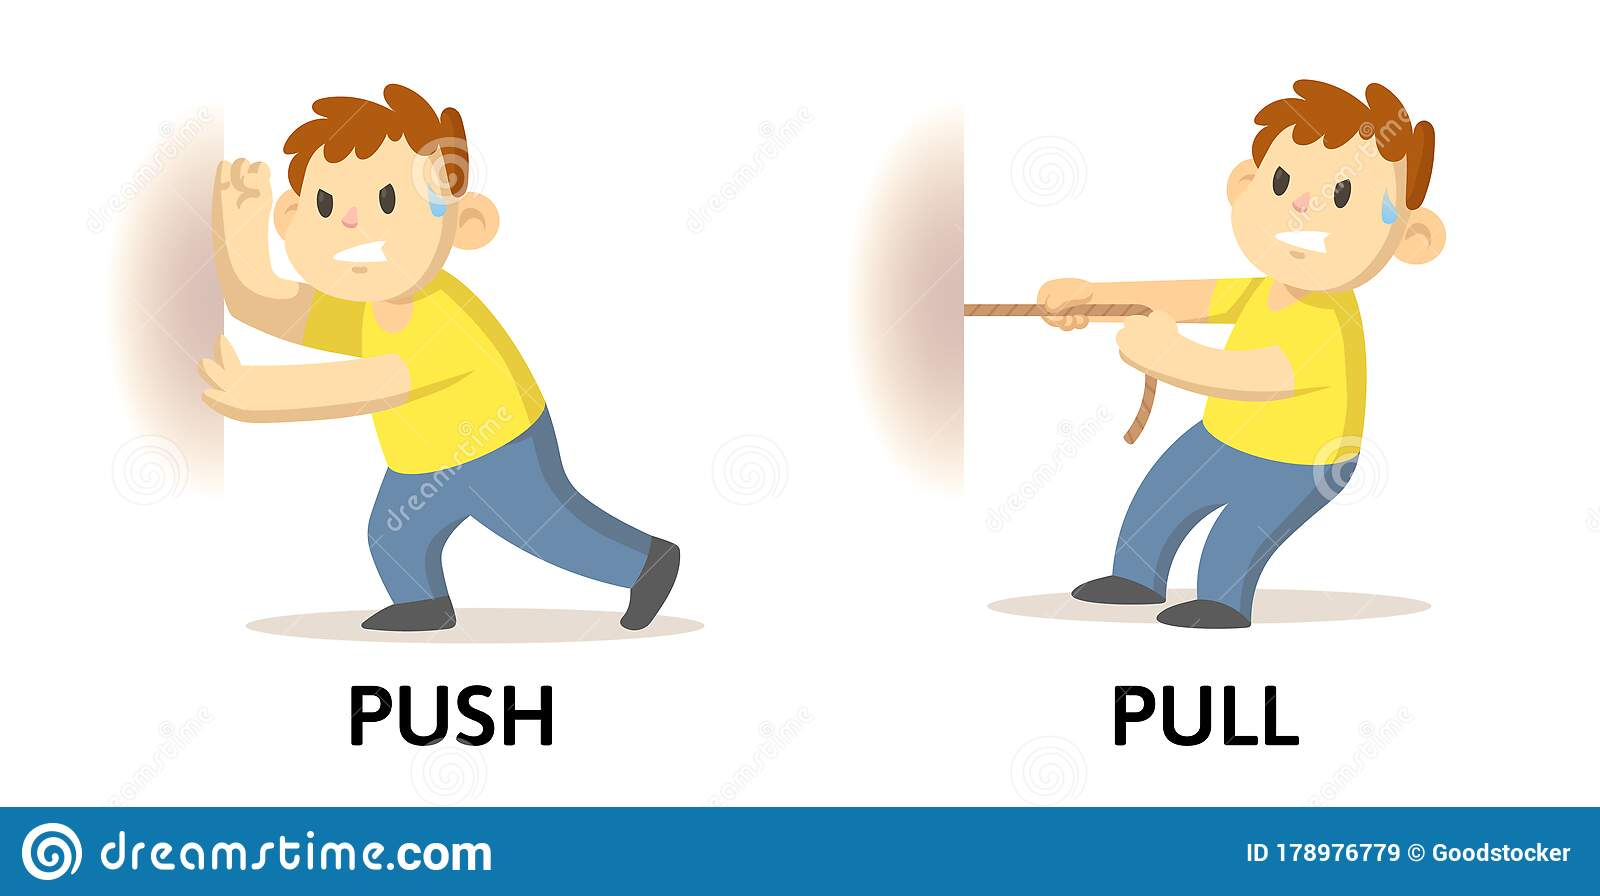 Words Push And Pull Flashcard With Cartoon Characters